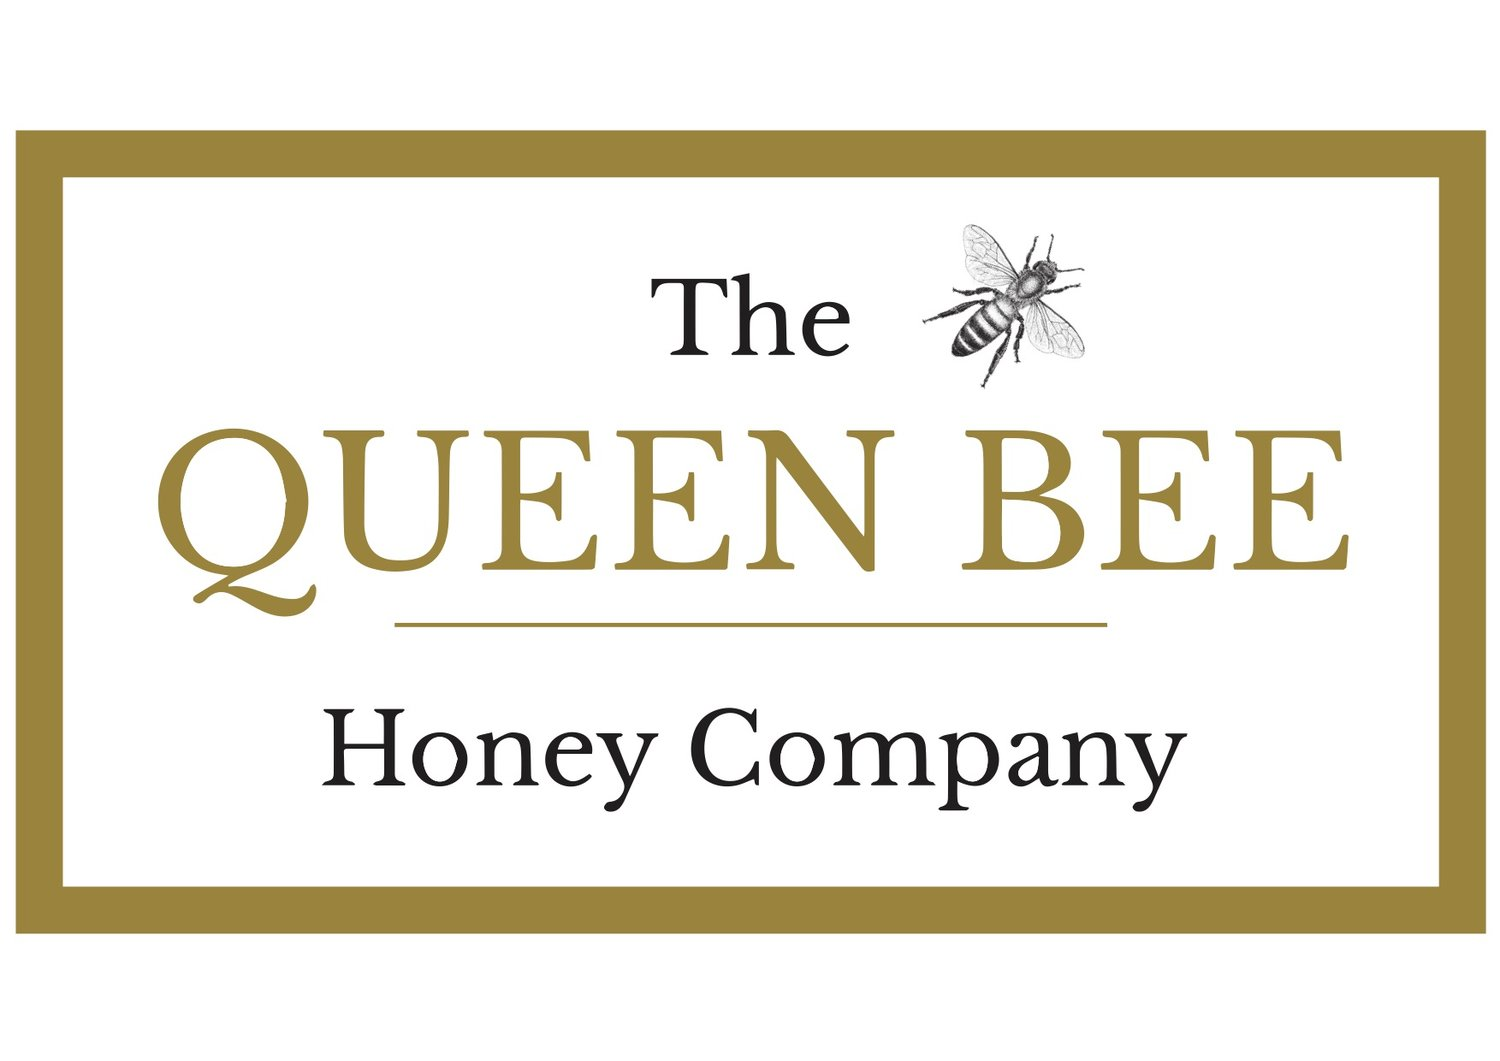 The Queen Bee Honey Co ltd